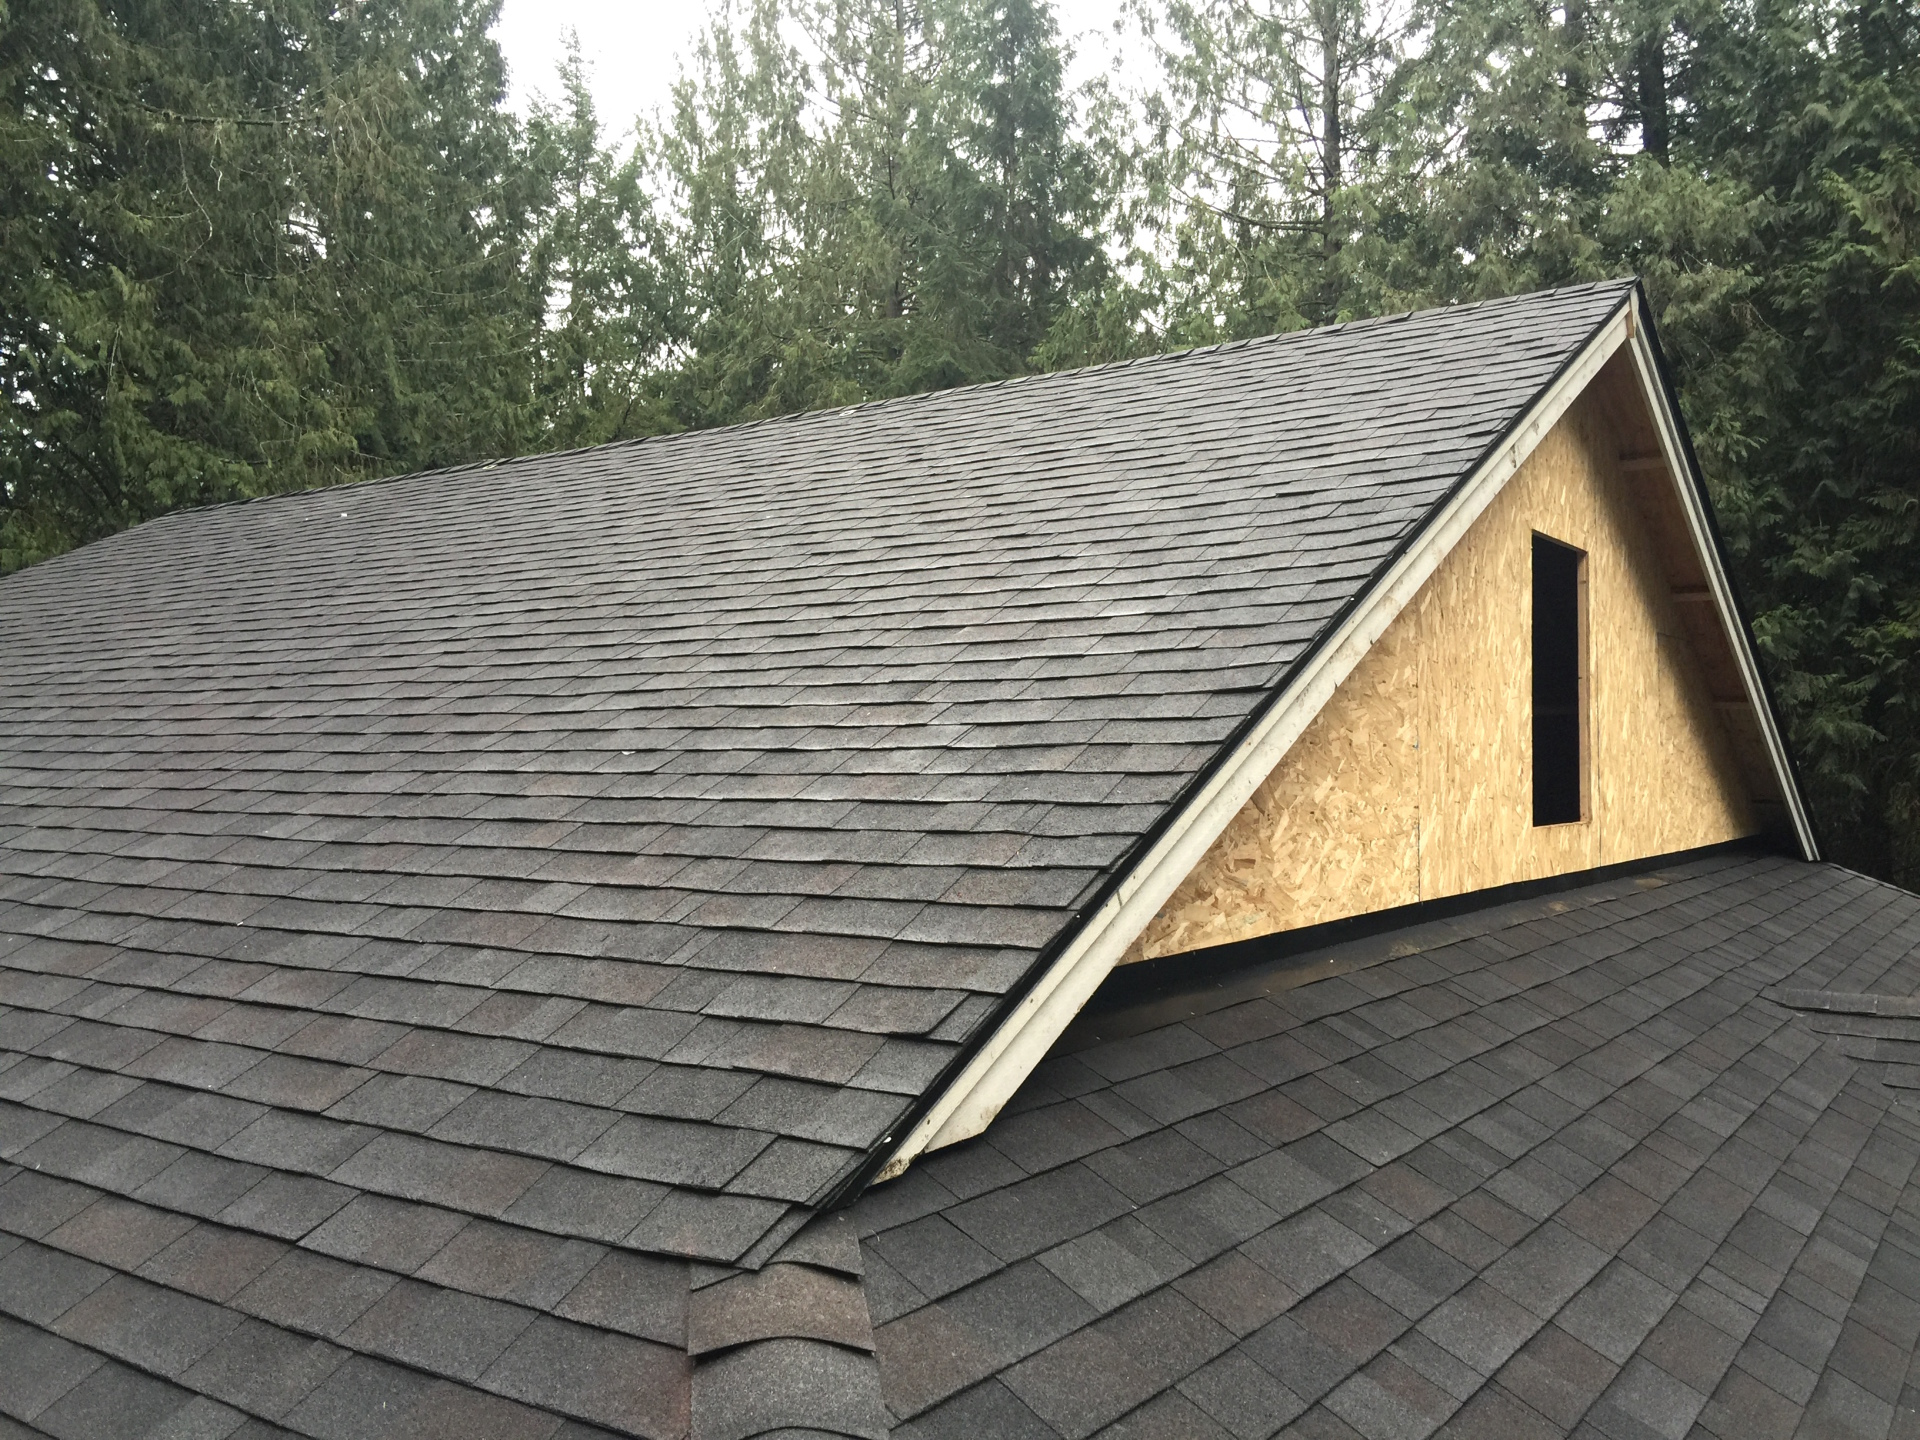 Residential Reroof Gig Harbor, WA